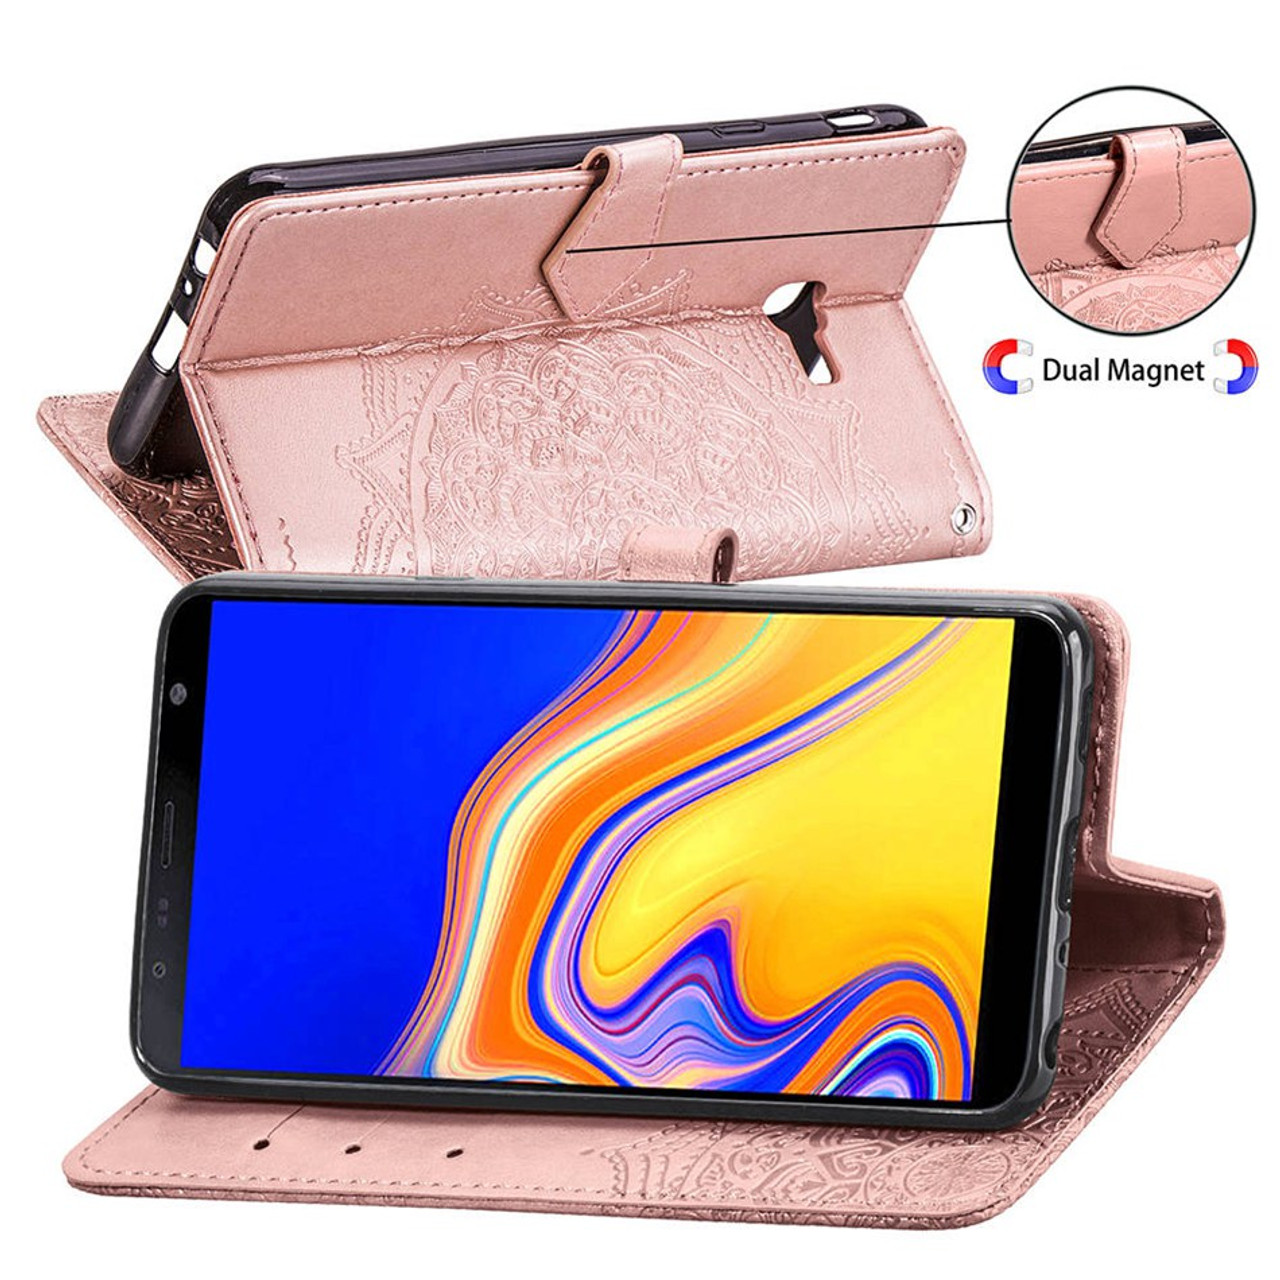 For Samsung Galaxy J4 Plus Leather Case On For Samsung J4 J6 Plus 2018 Cover Classic Style Flip Wallet Phone Cases Women Men Phone Bags & Cases